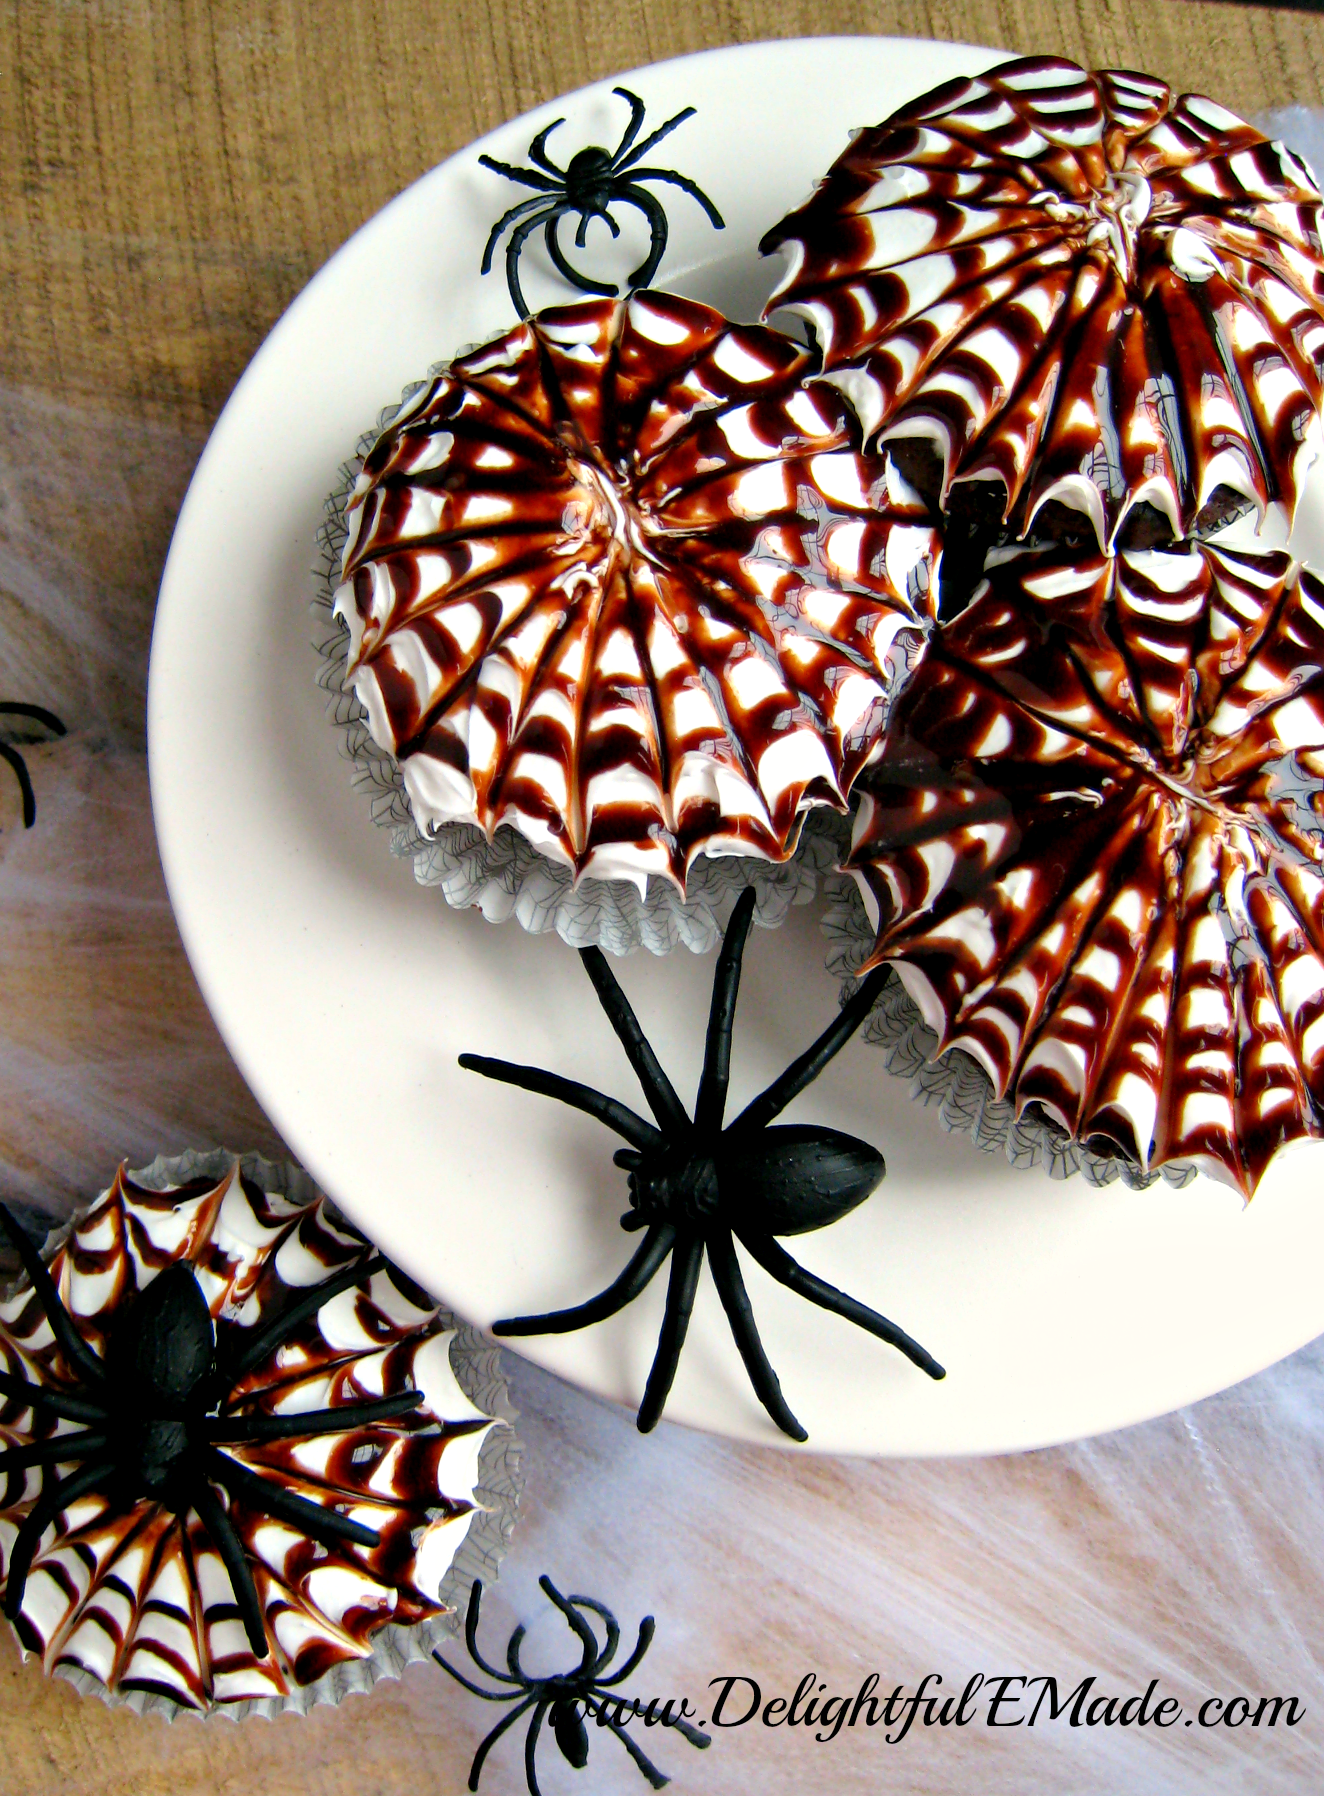 Spooky Spiderweb Cupcakes by Delightful E Made